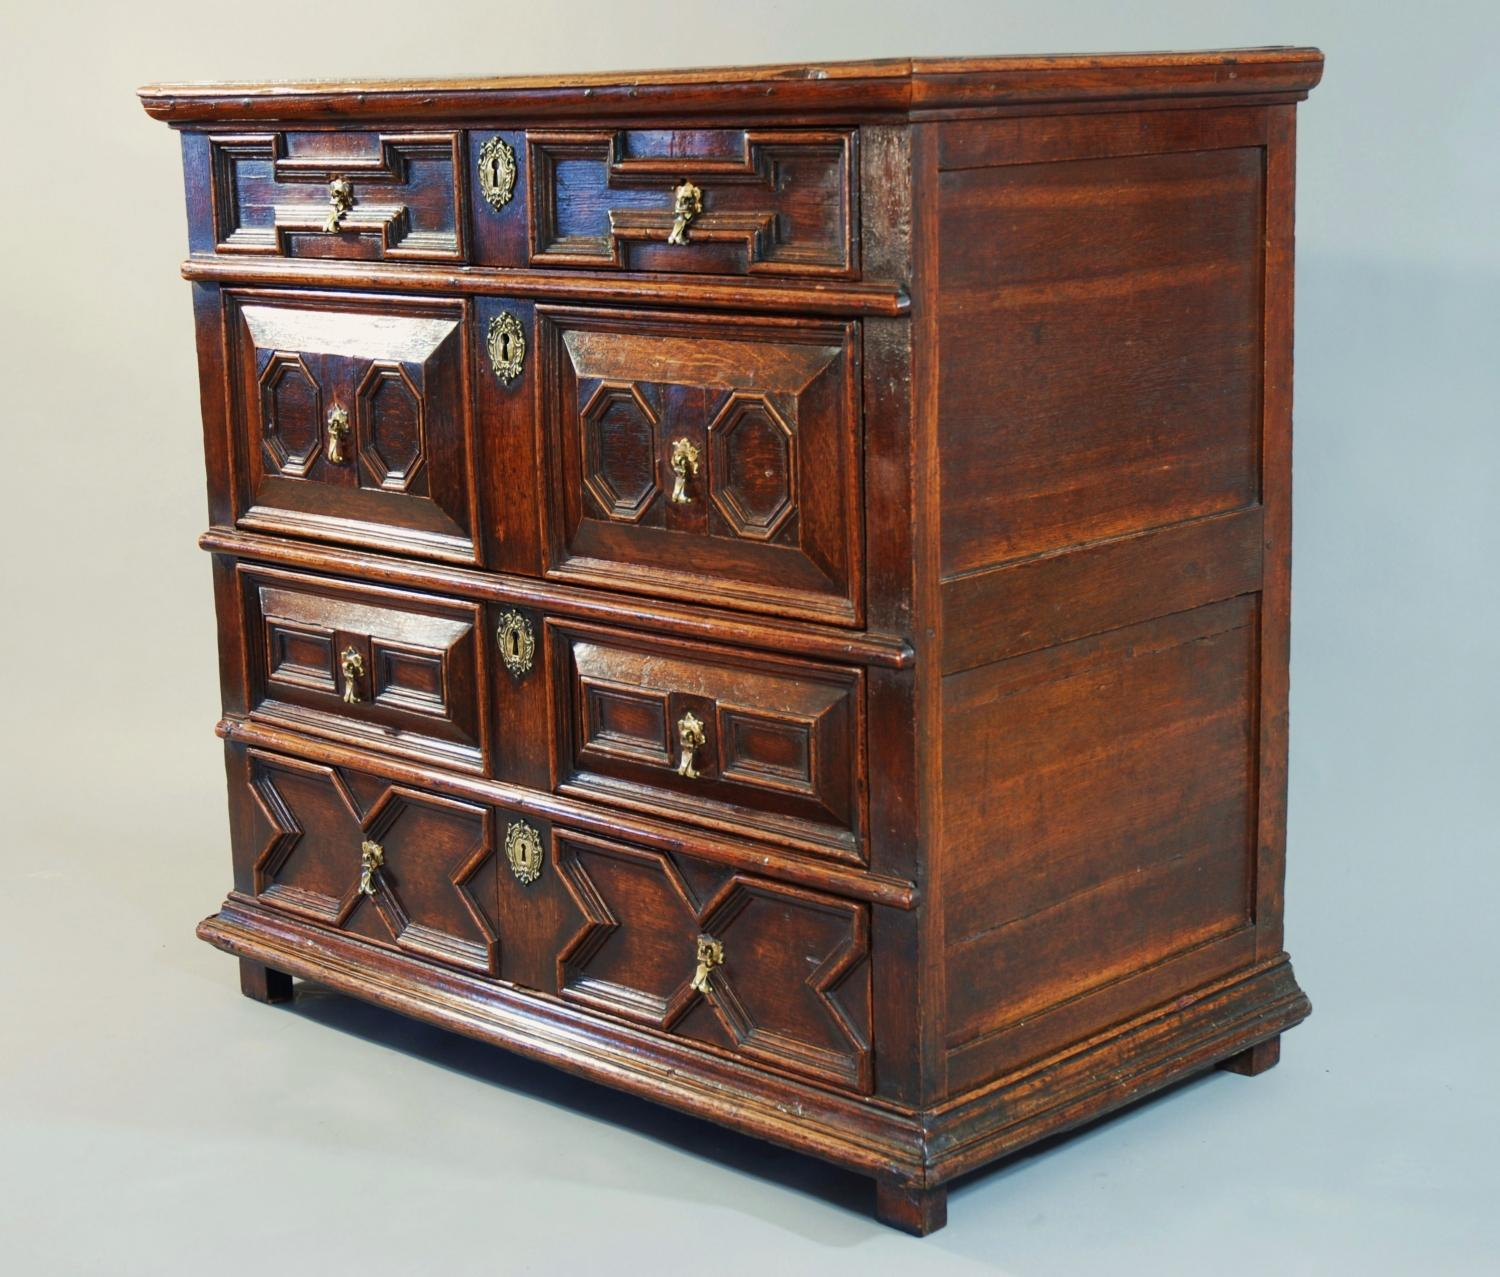 Chest Of Drawers Ikea Dubai ~ 17th century oak moulded chest of drawers 11699 pic6 size3 jpg